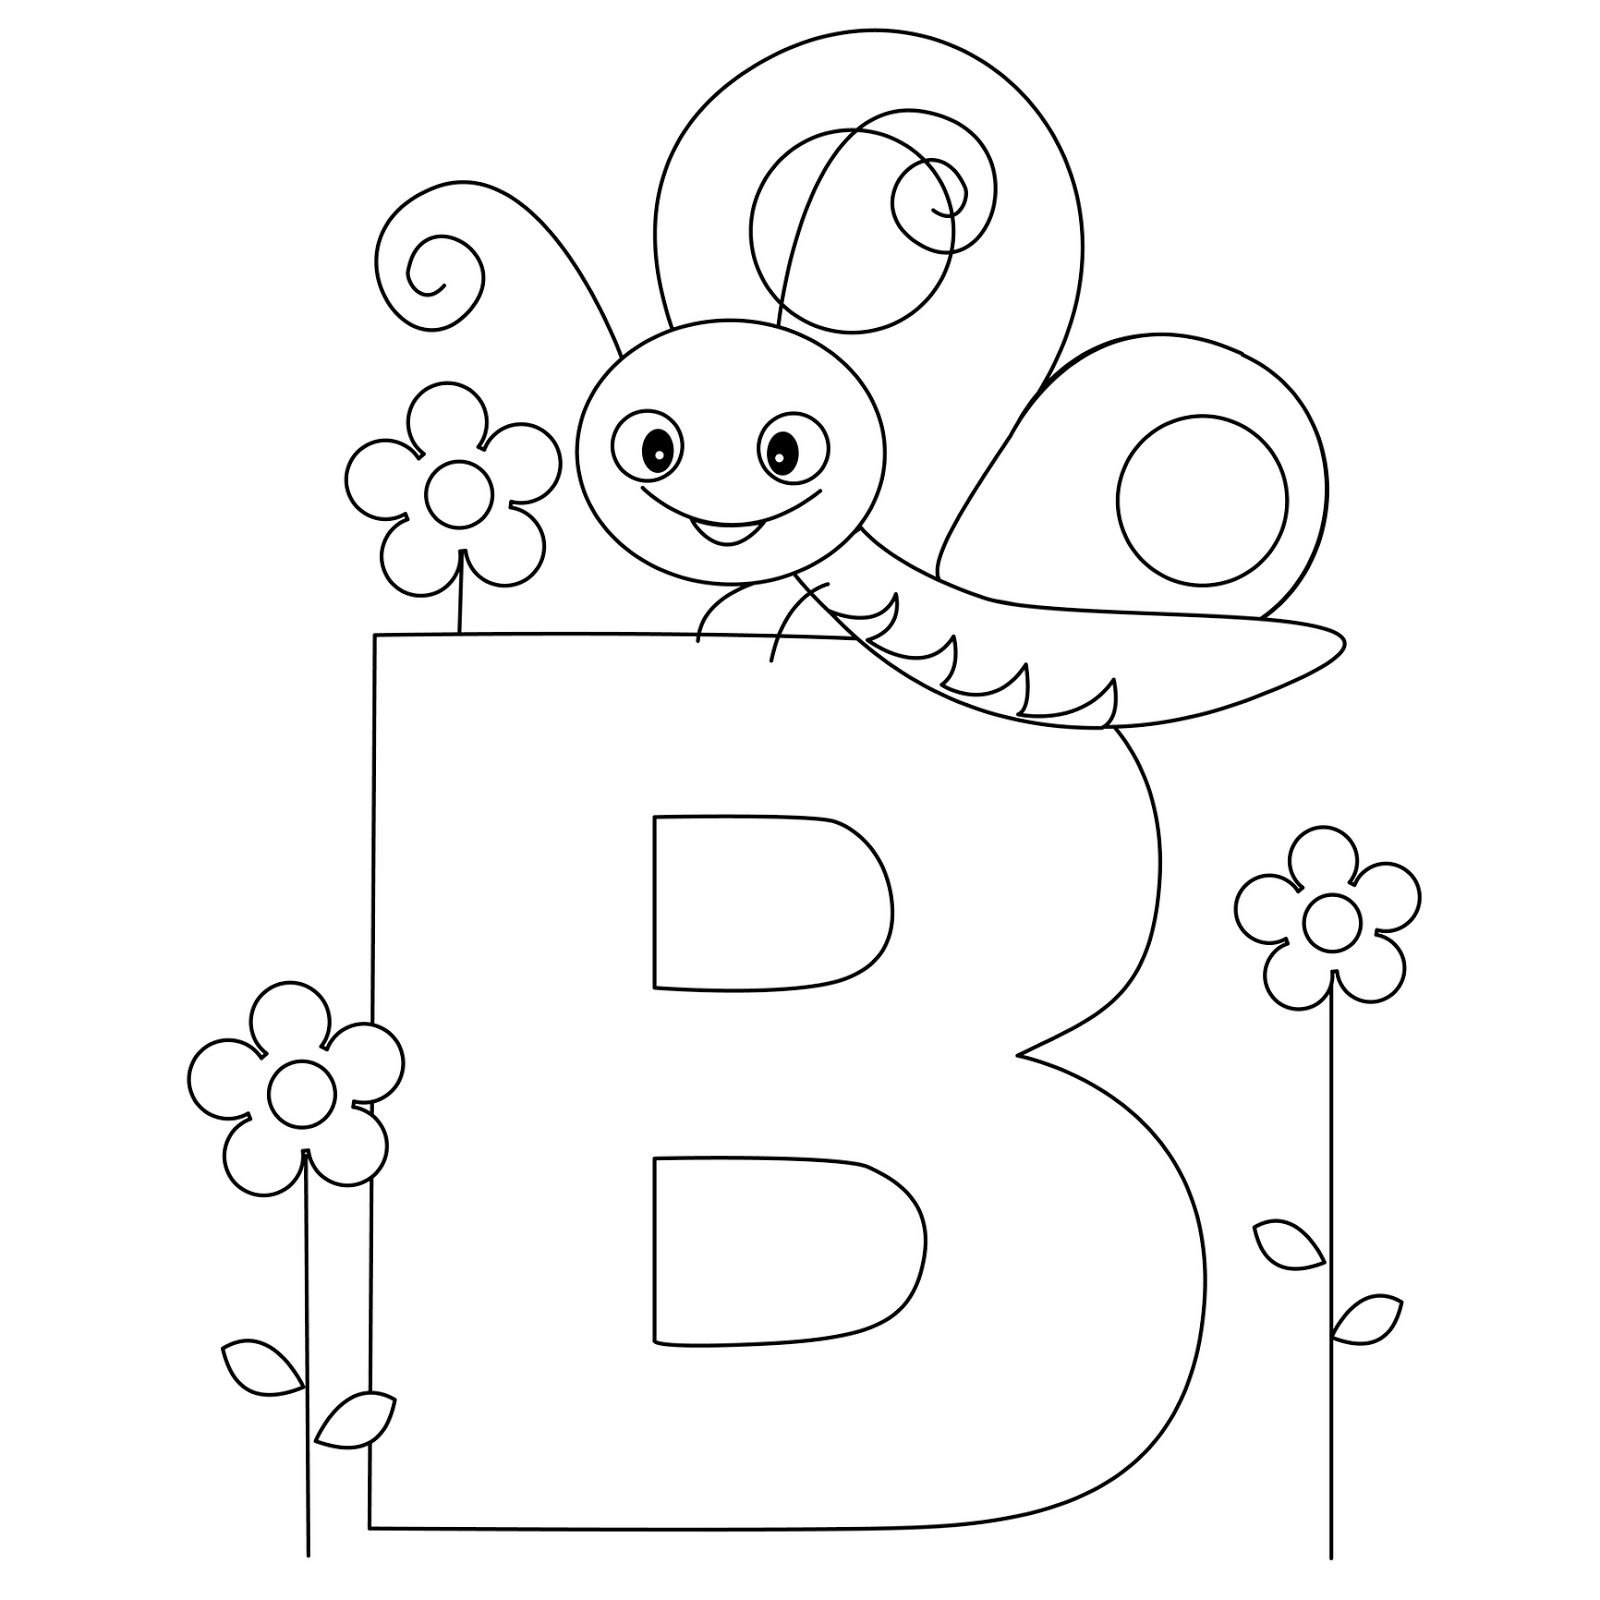 b coloring pages for kids - photo #17